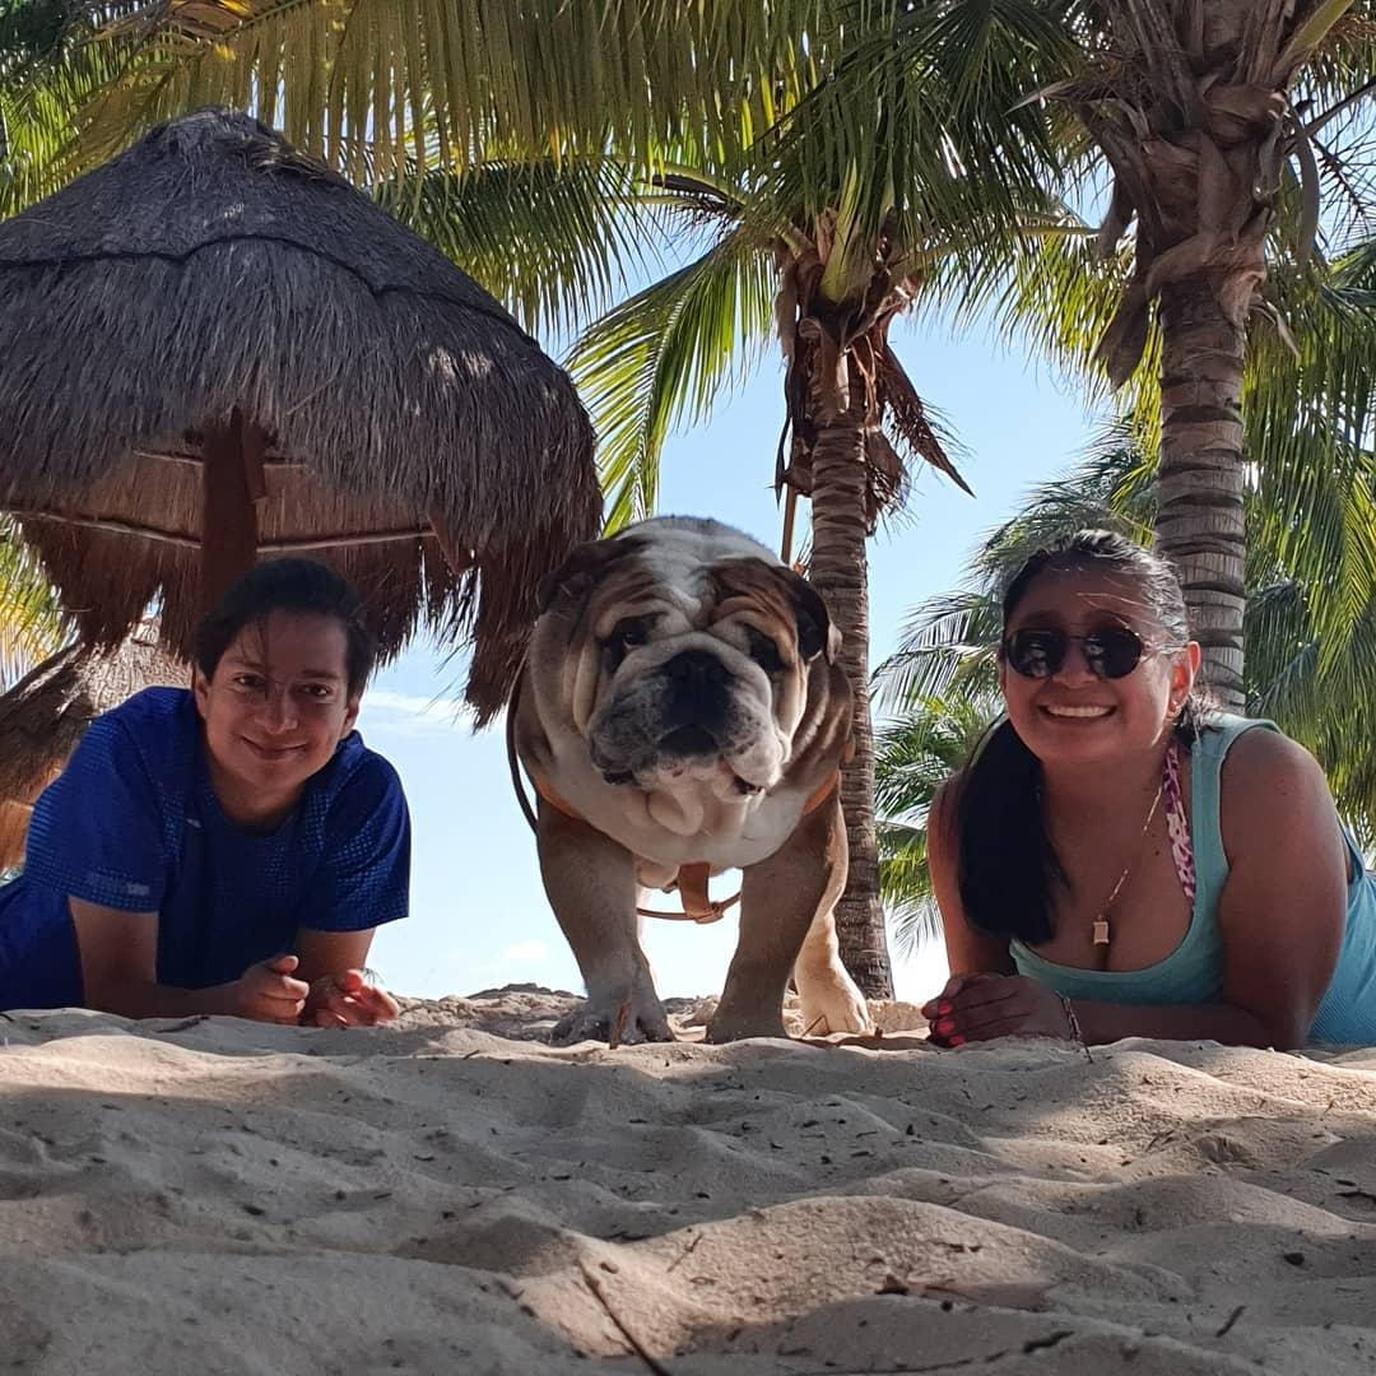 A Couple Lays on the Beach Looking at the Camera With a Bulldog Between Them in Pet-Friendly Cancun.